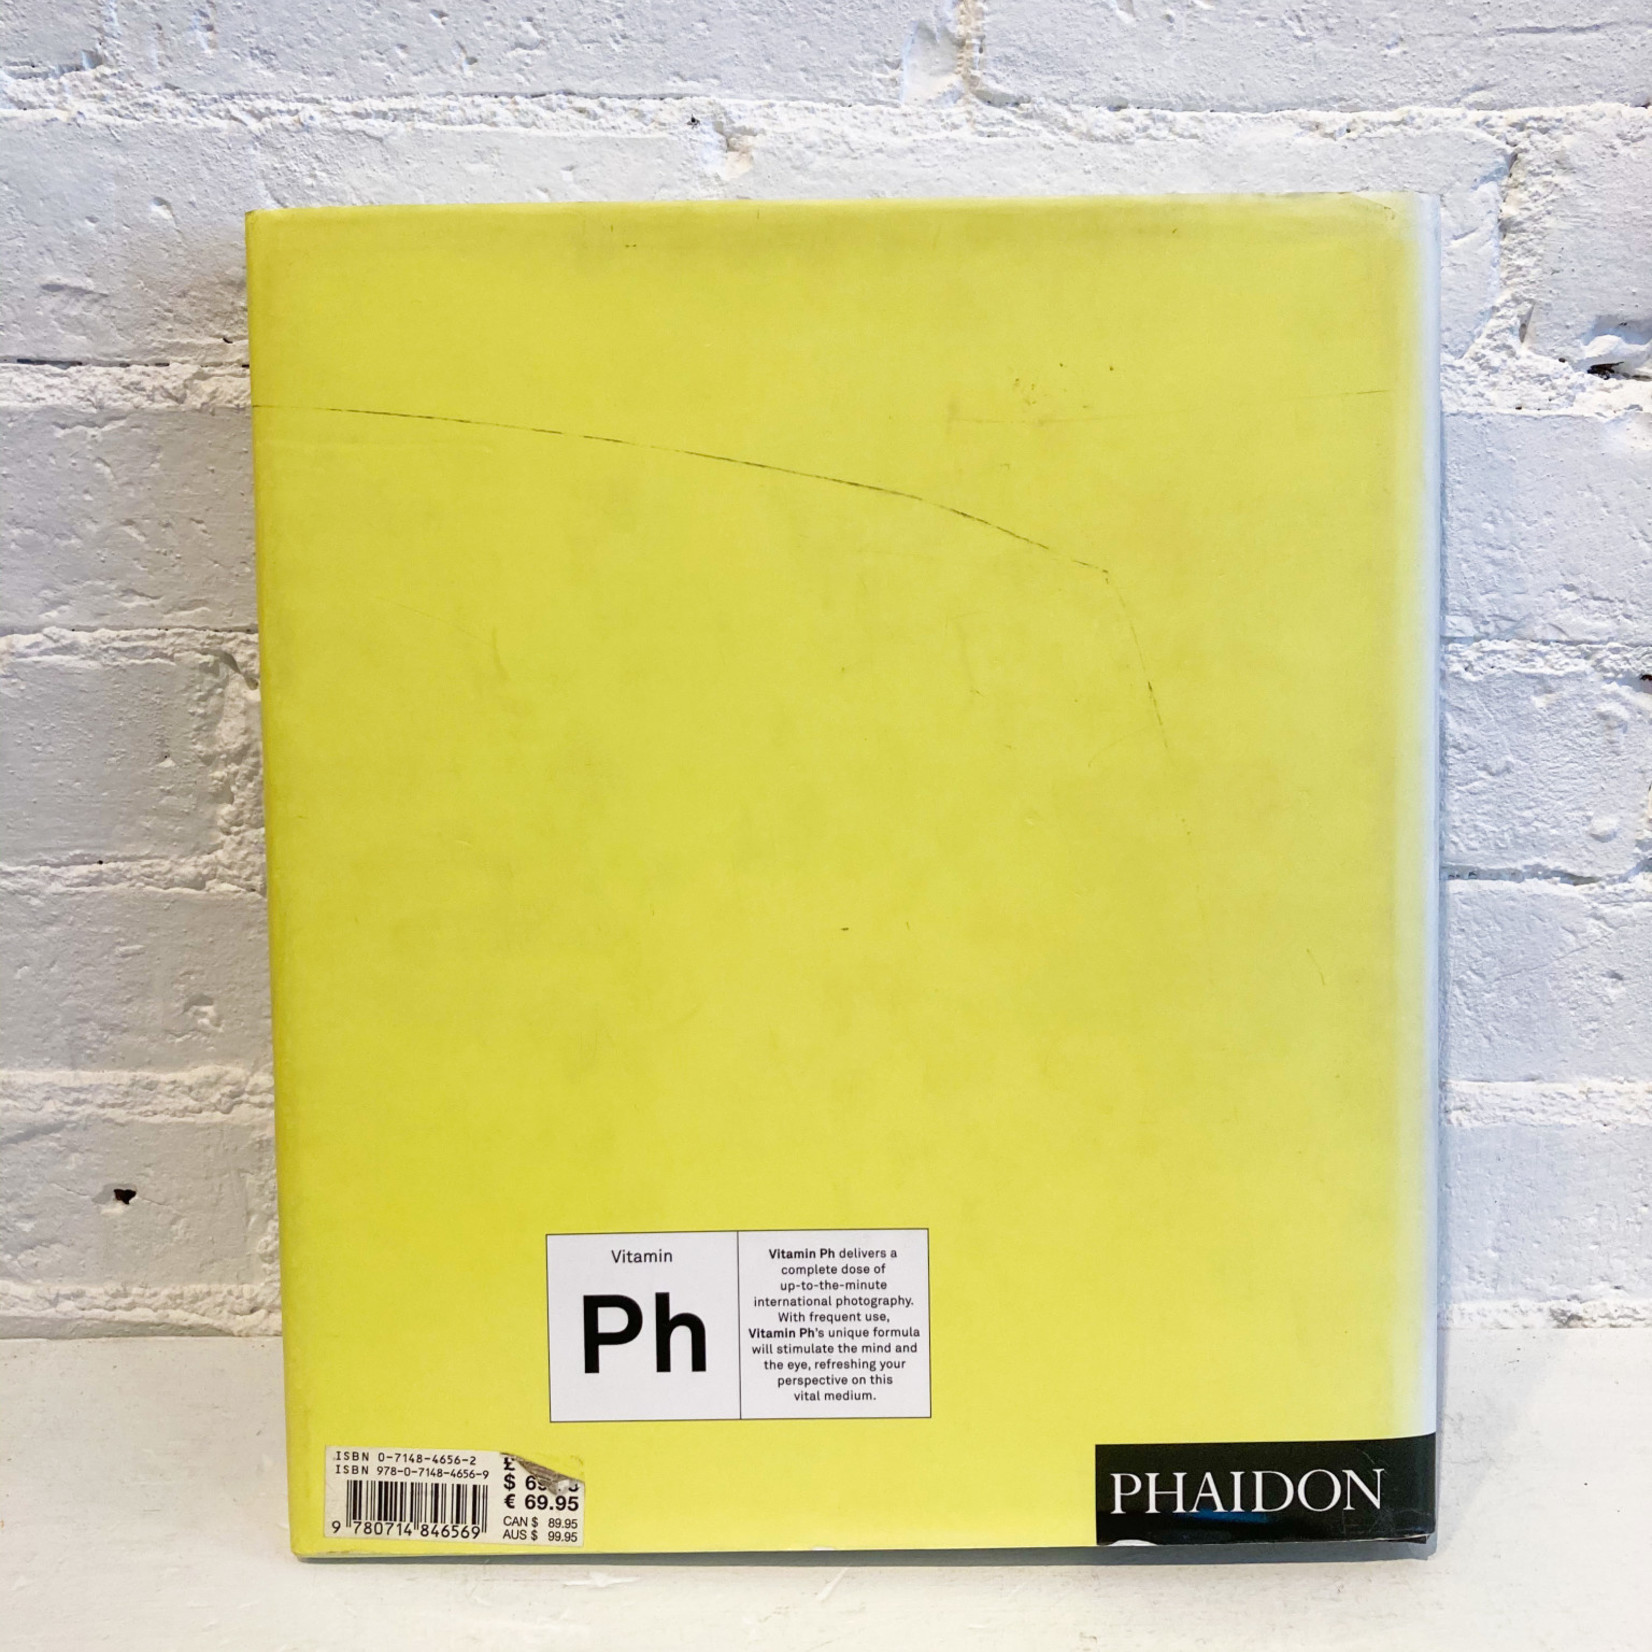 Vitamin Ph: New Perspectives in Photography